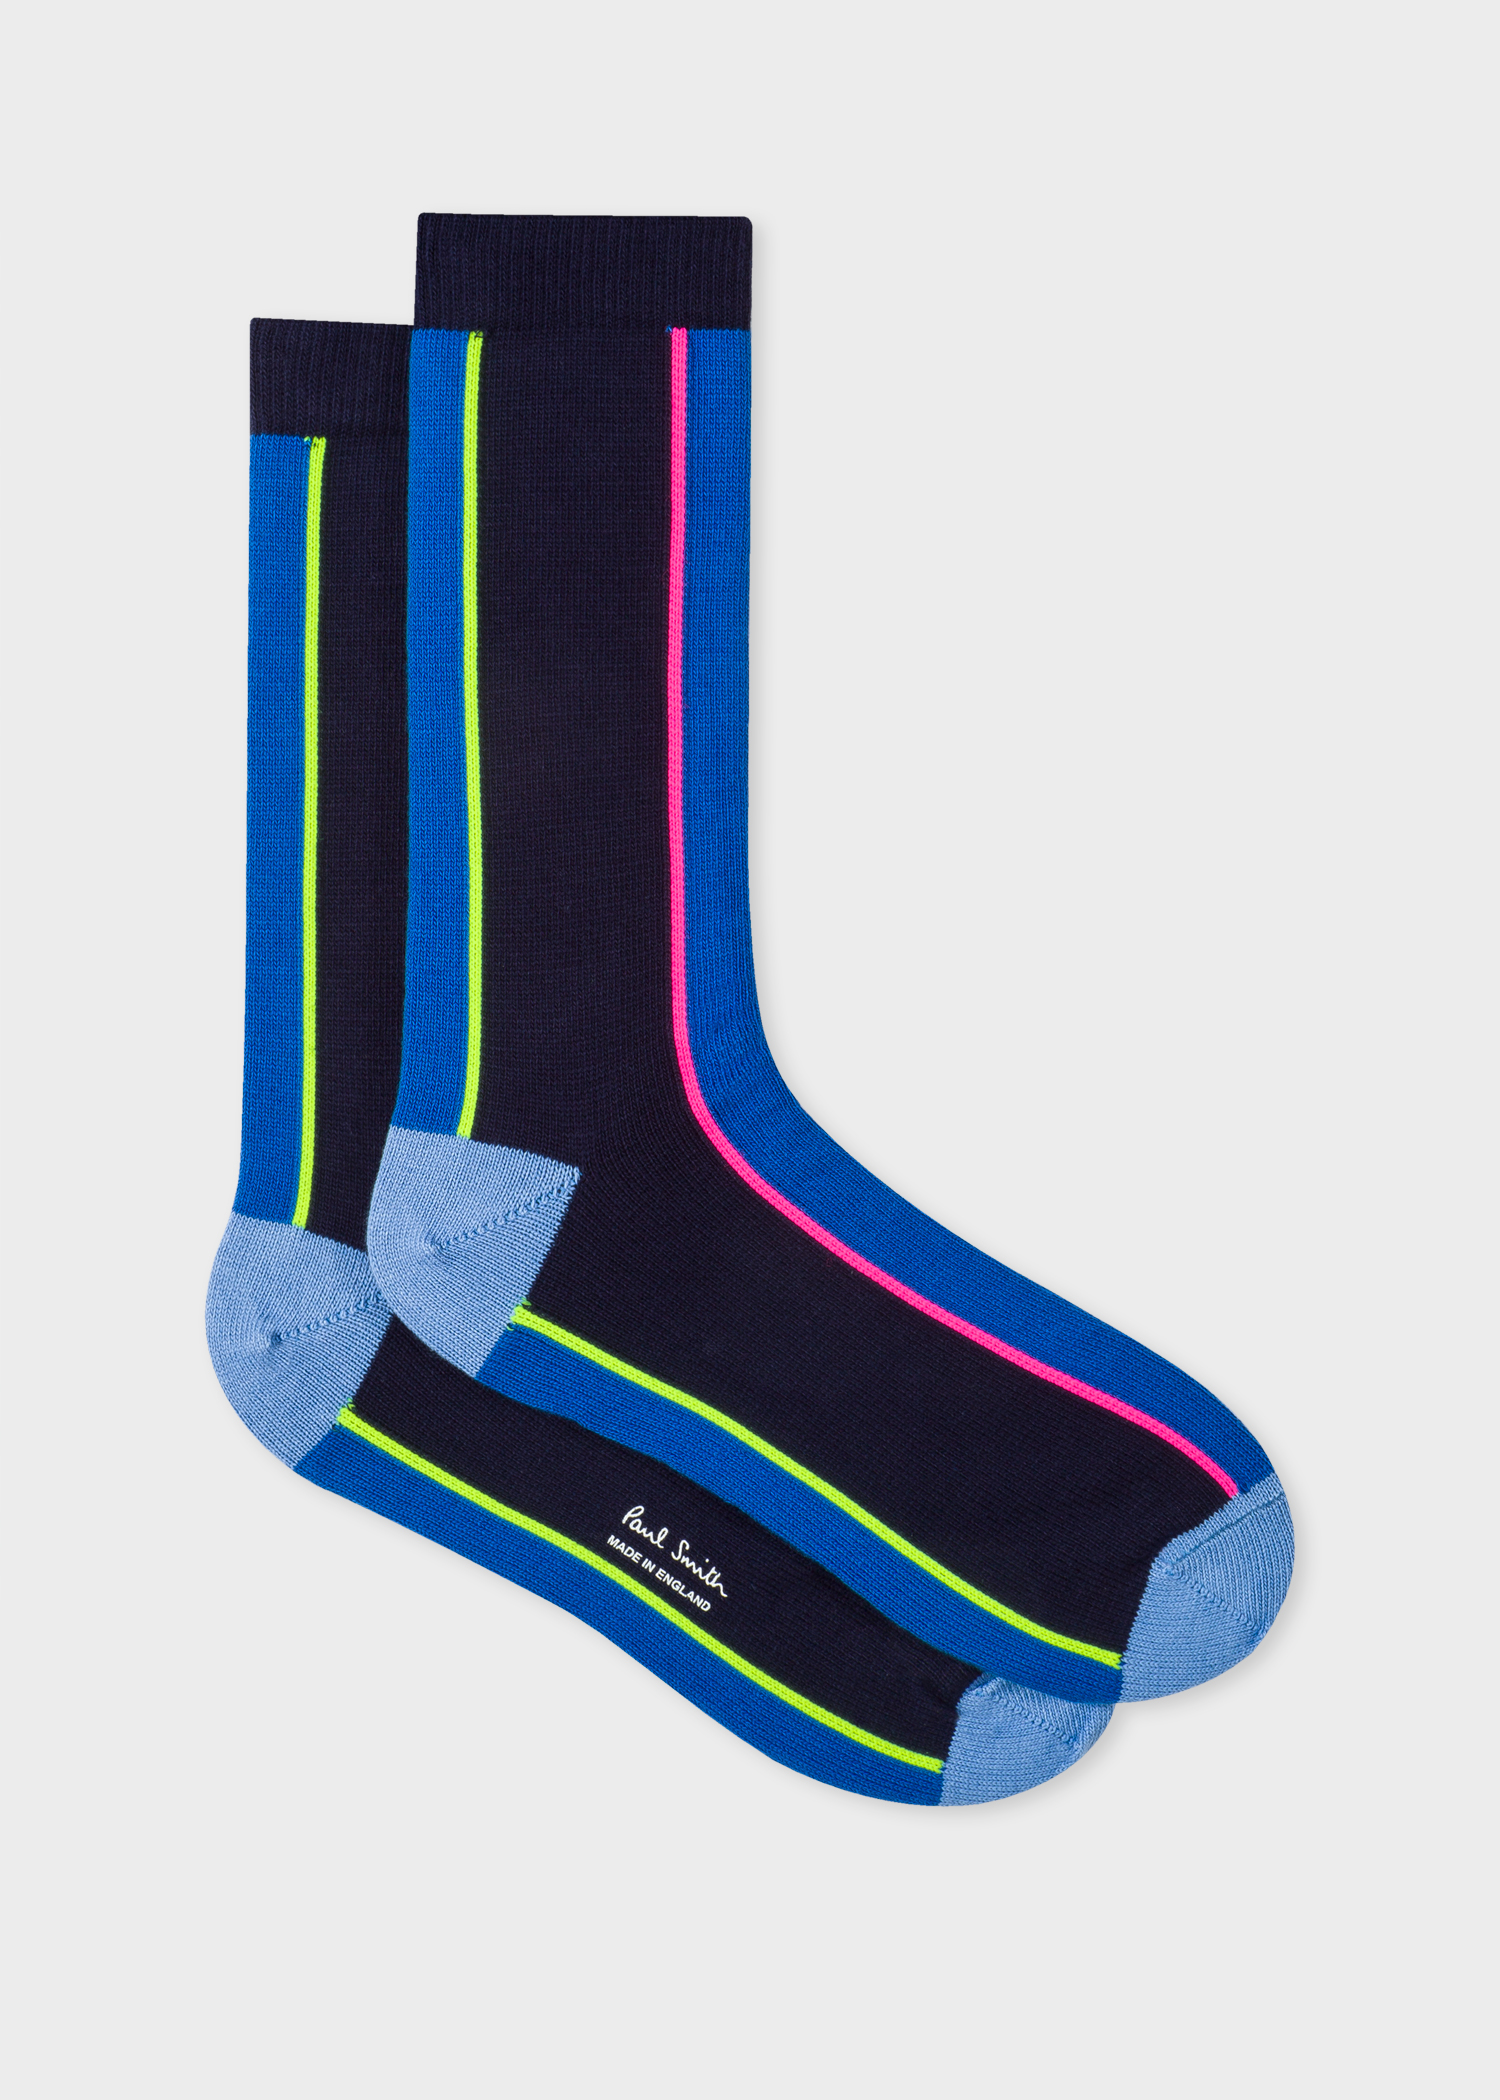 d20c82946b6 Side View - Men s Navy And Indigo Vertical Stripe Socks Paul Smith